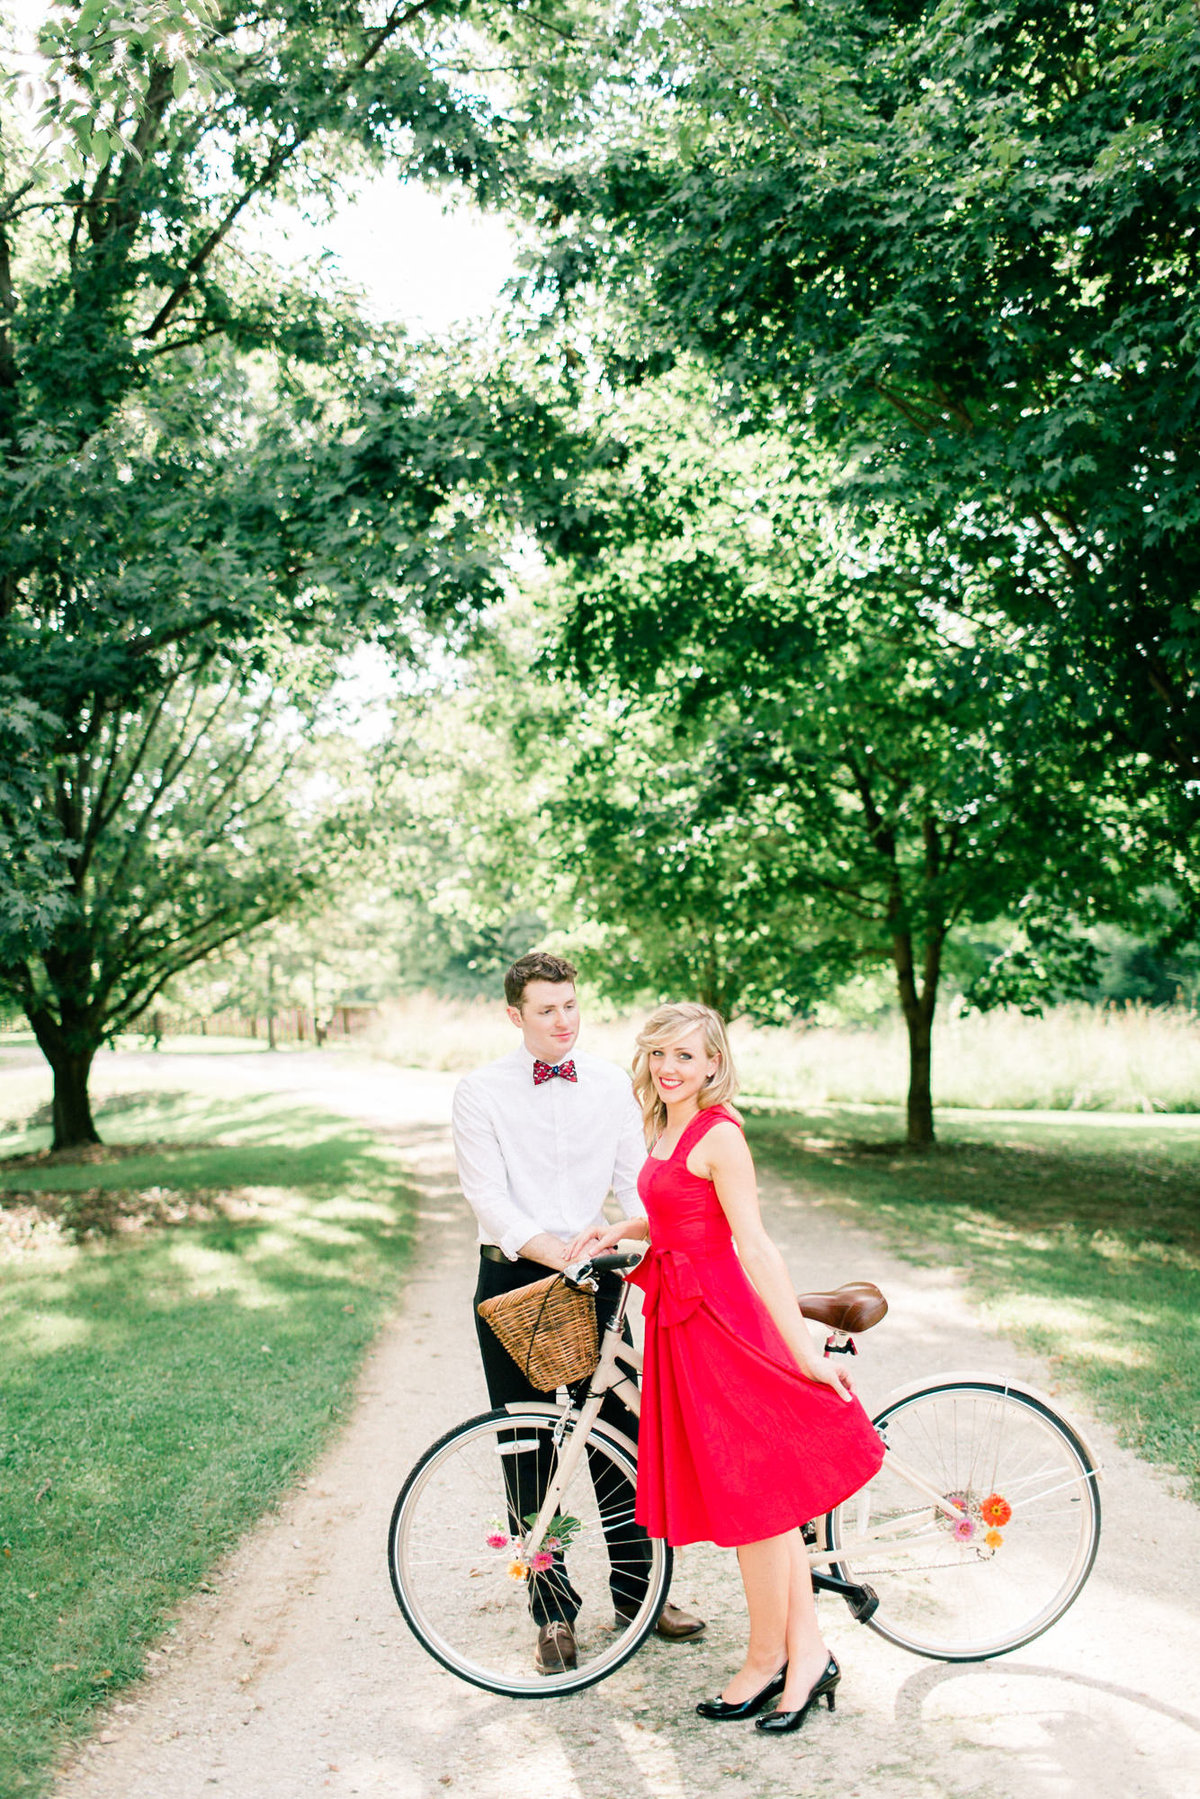 faust-park-saint-louis-missouri-wedding-photos-1005